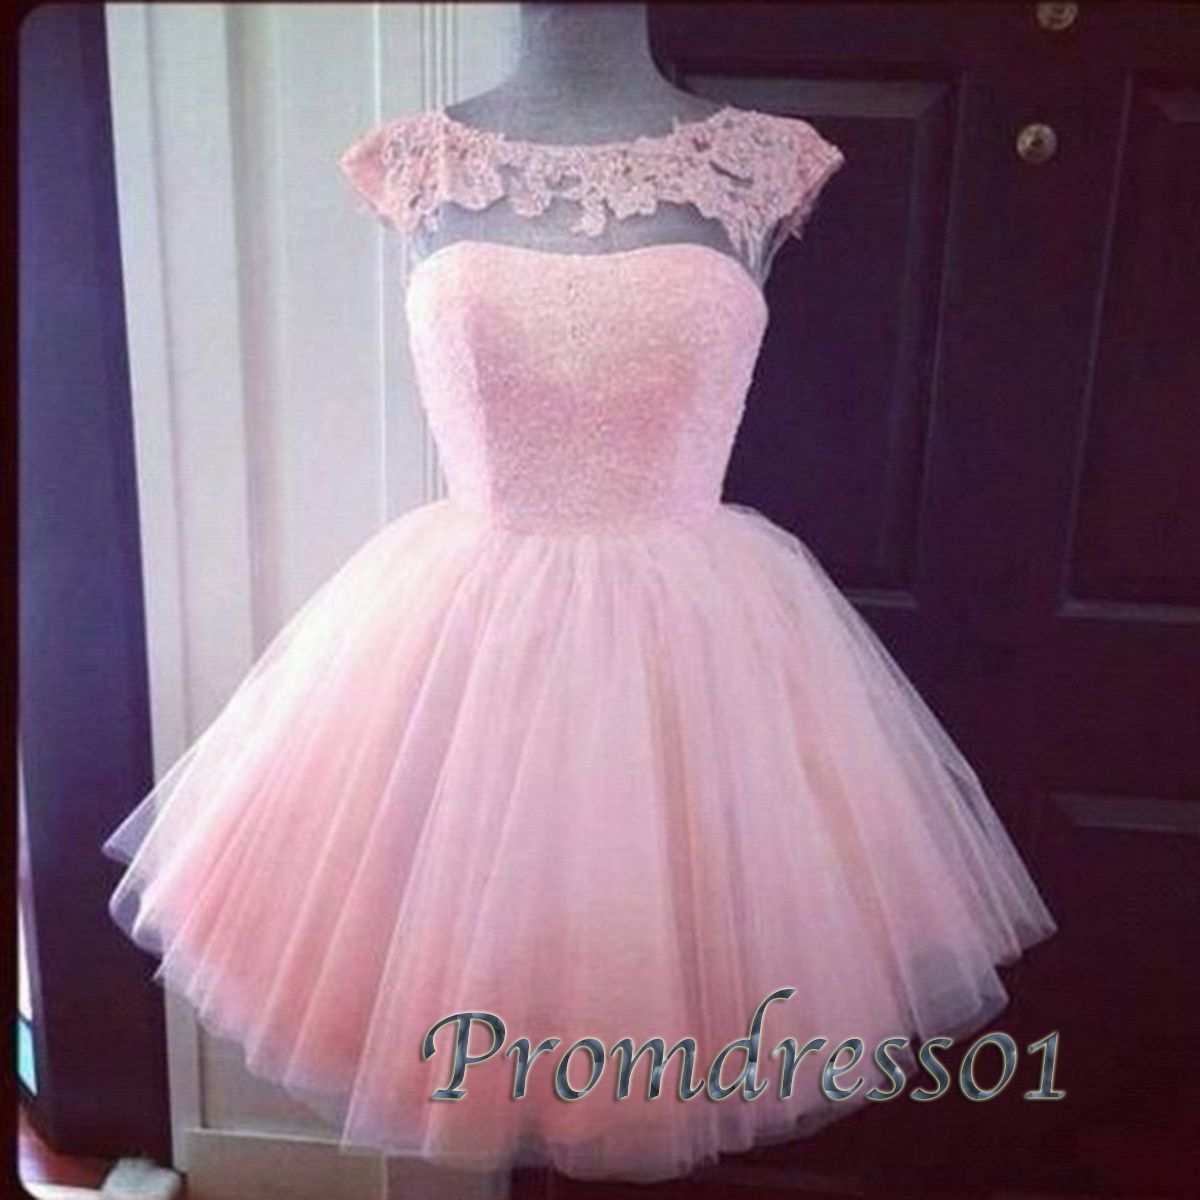 Pink lace tulle backless short prom dress ball dress dresses